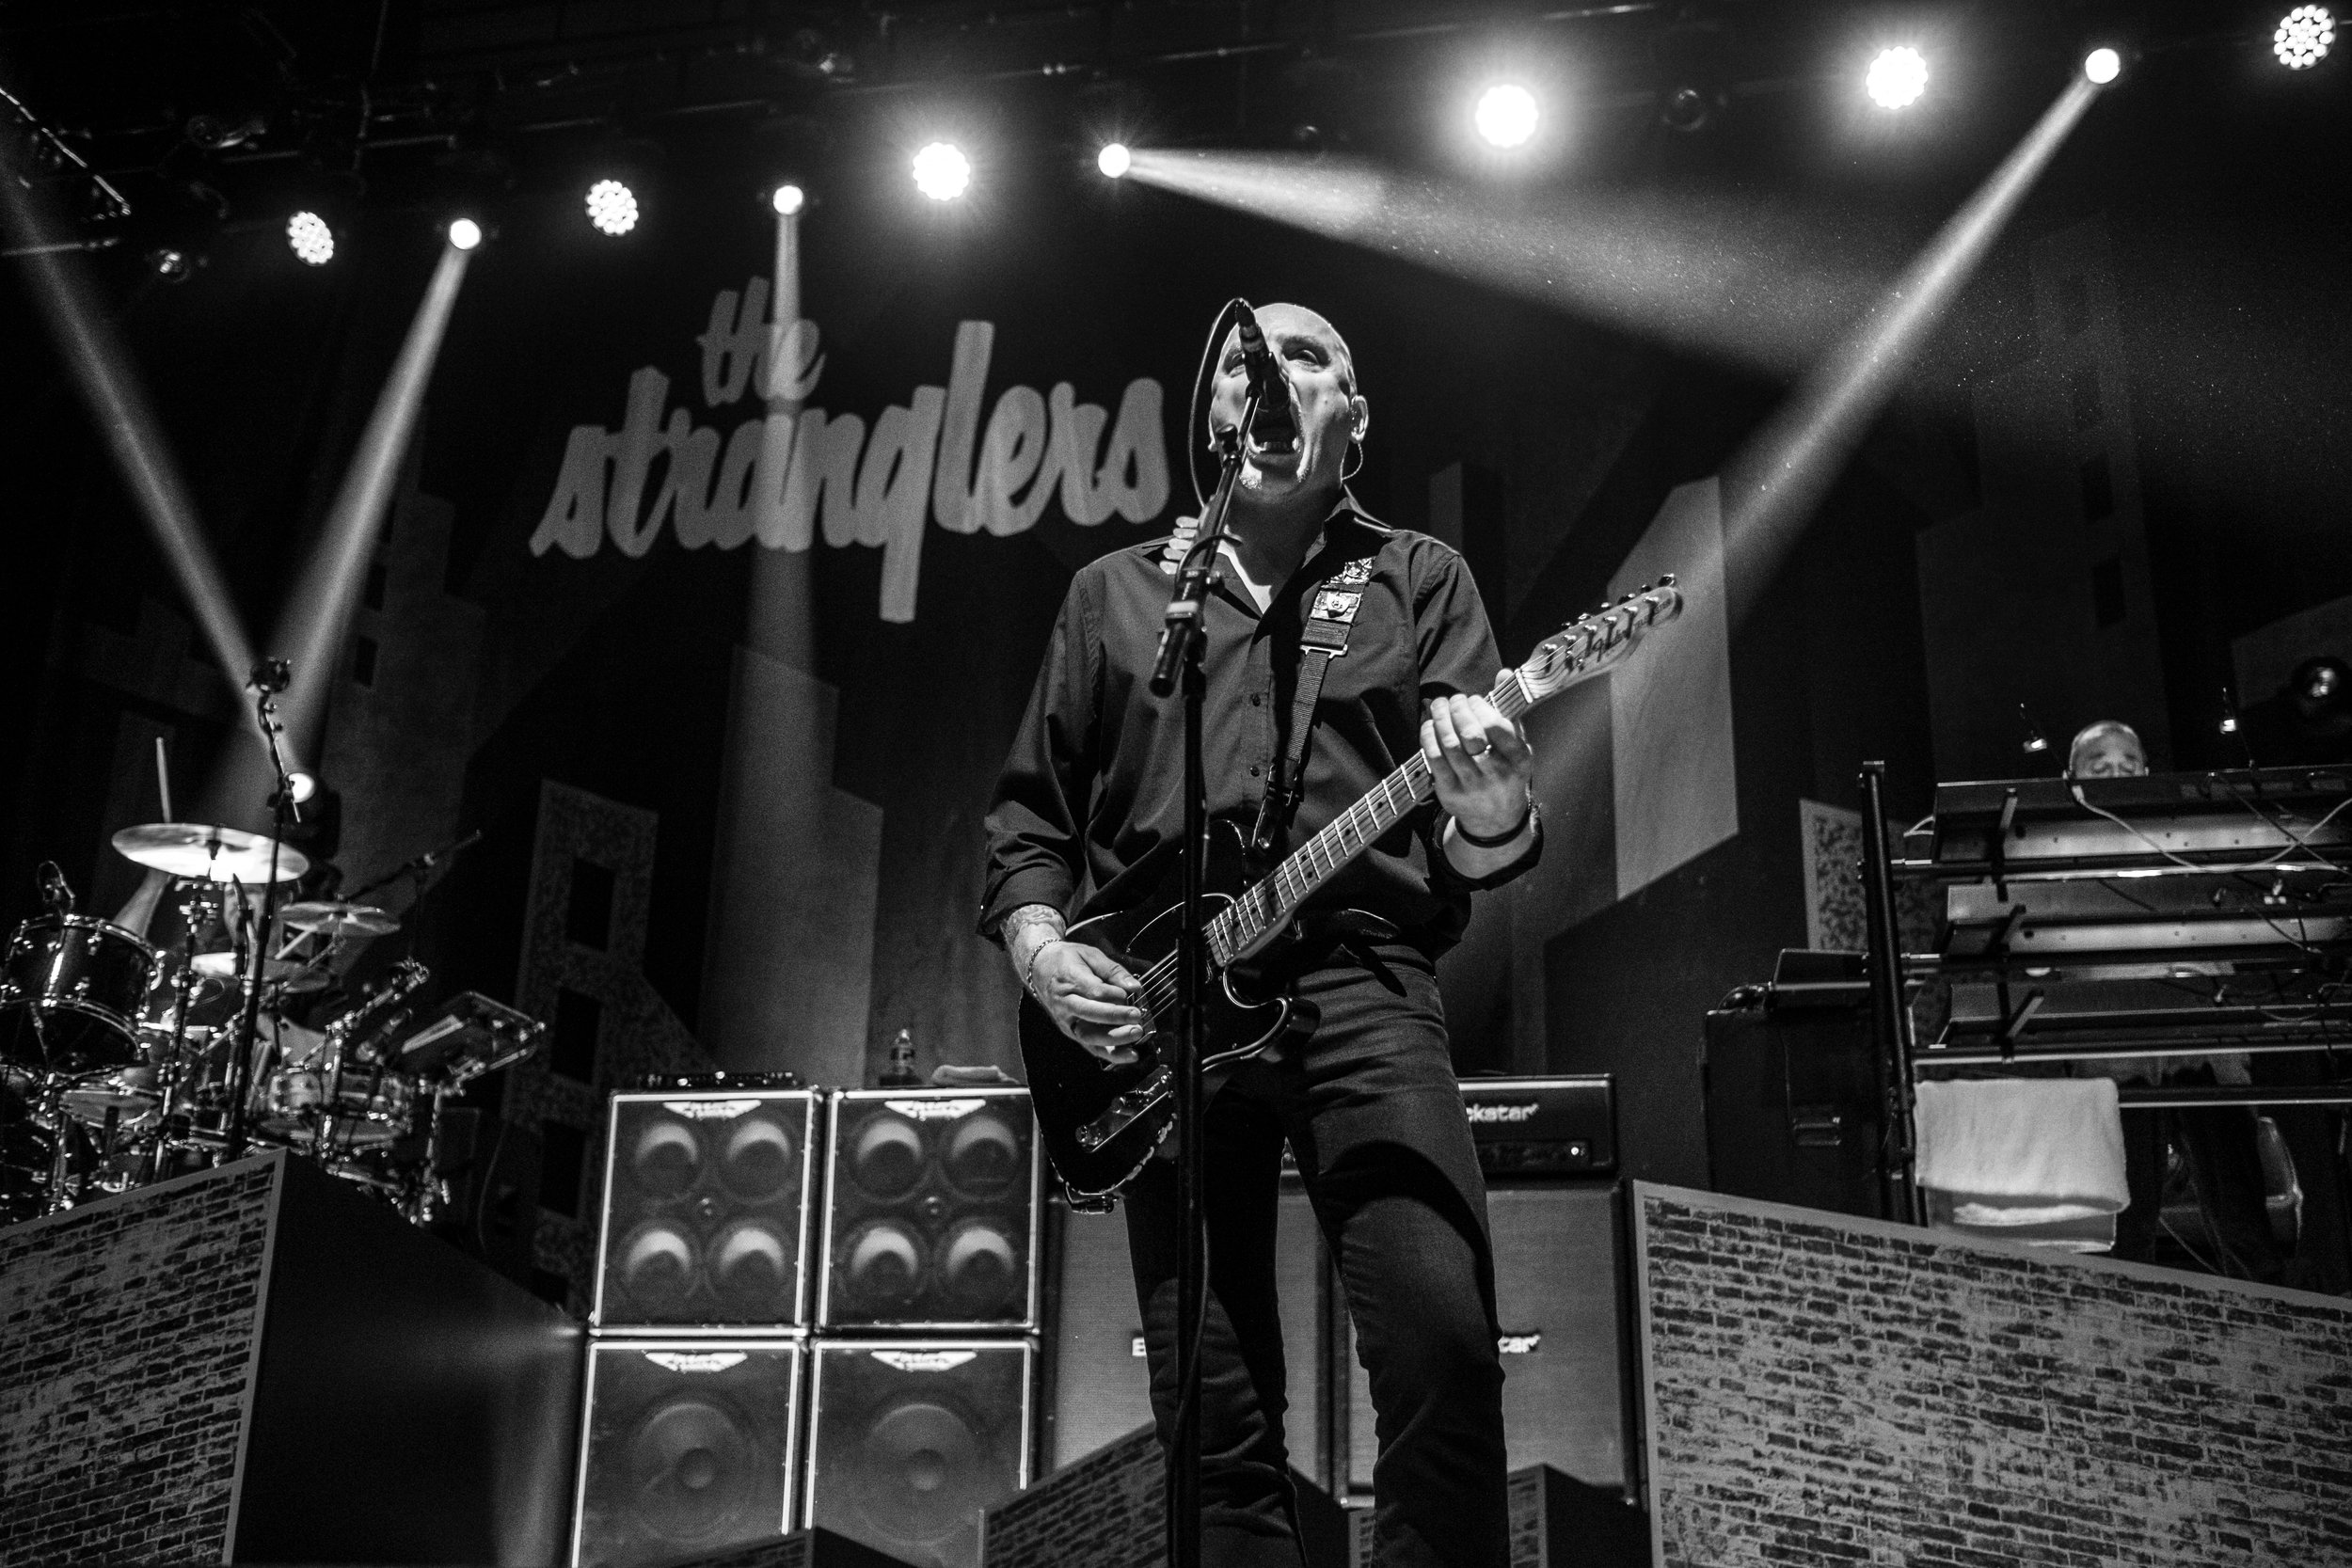 THE STRANGLERS PLAY DUNFERMLINE'S ALHAMBRA THEATRE | PICTURE BY: COLIN FOY PHOTOGRAPHY